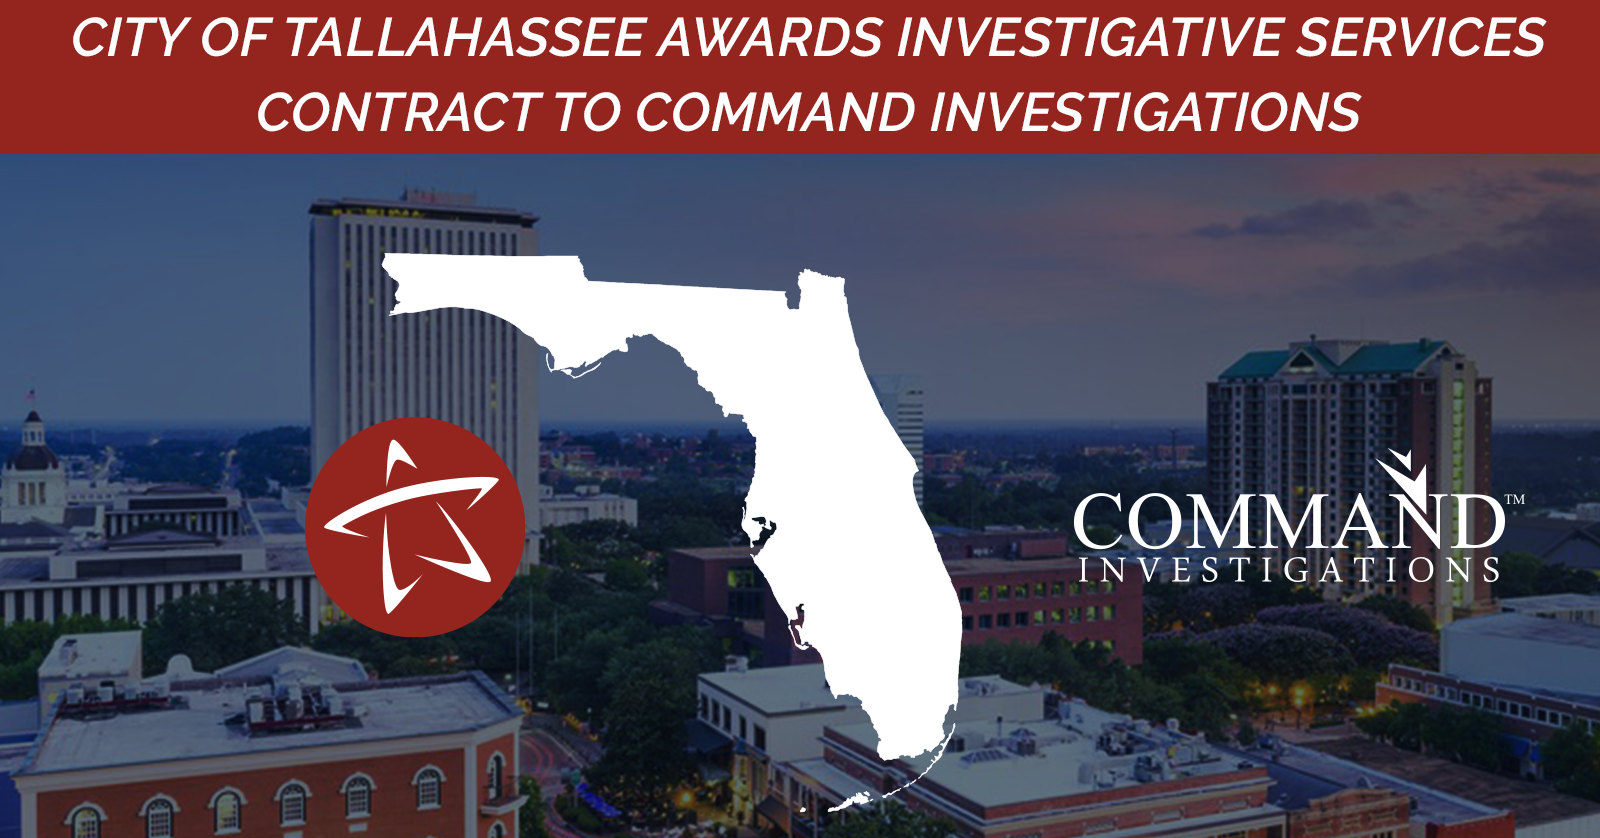 City of Tallahassee awards investigative contract to Command Investigations